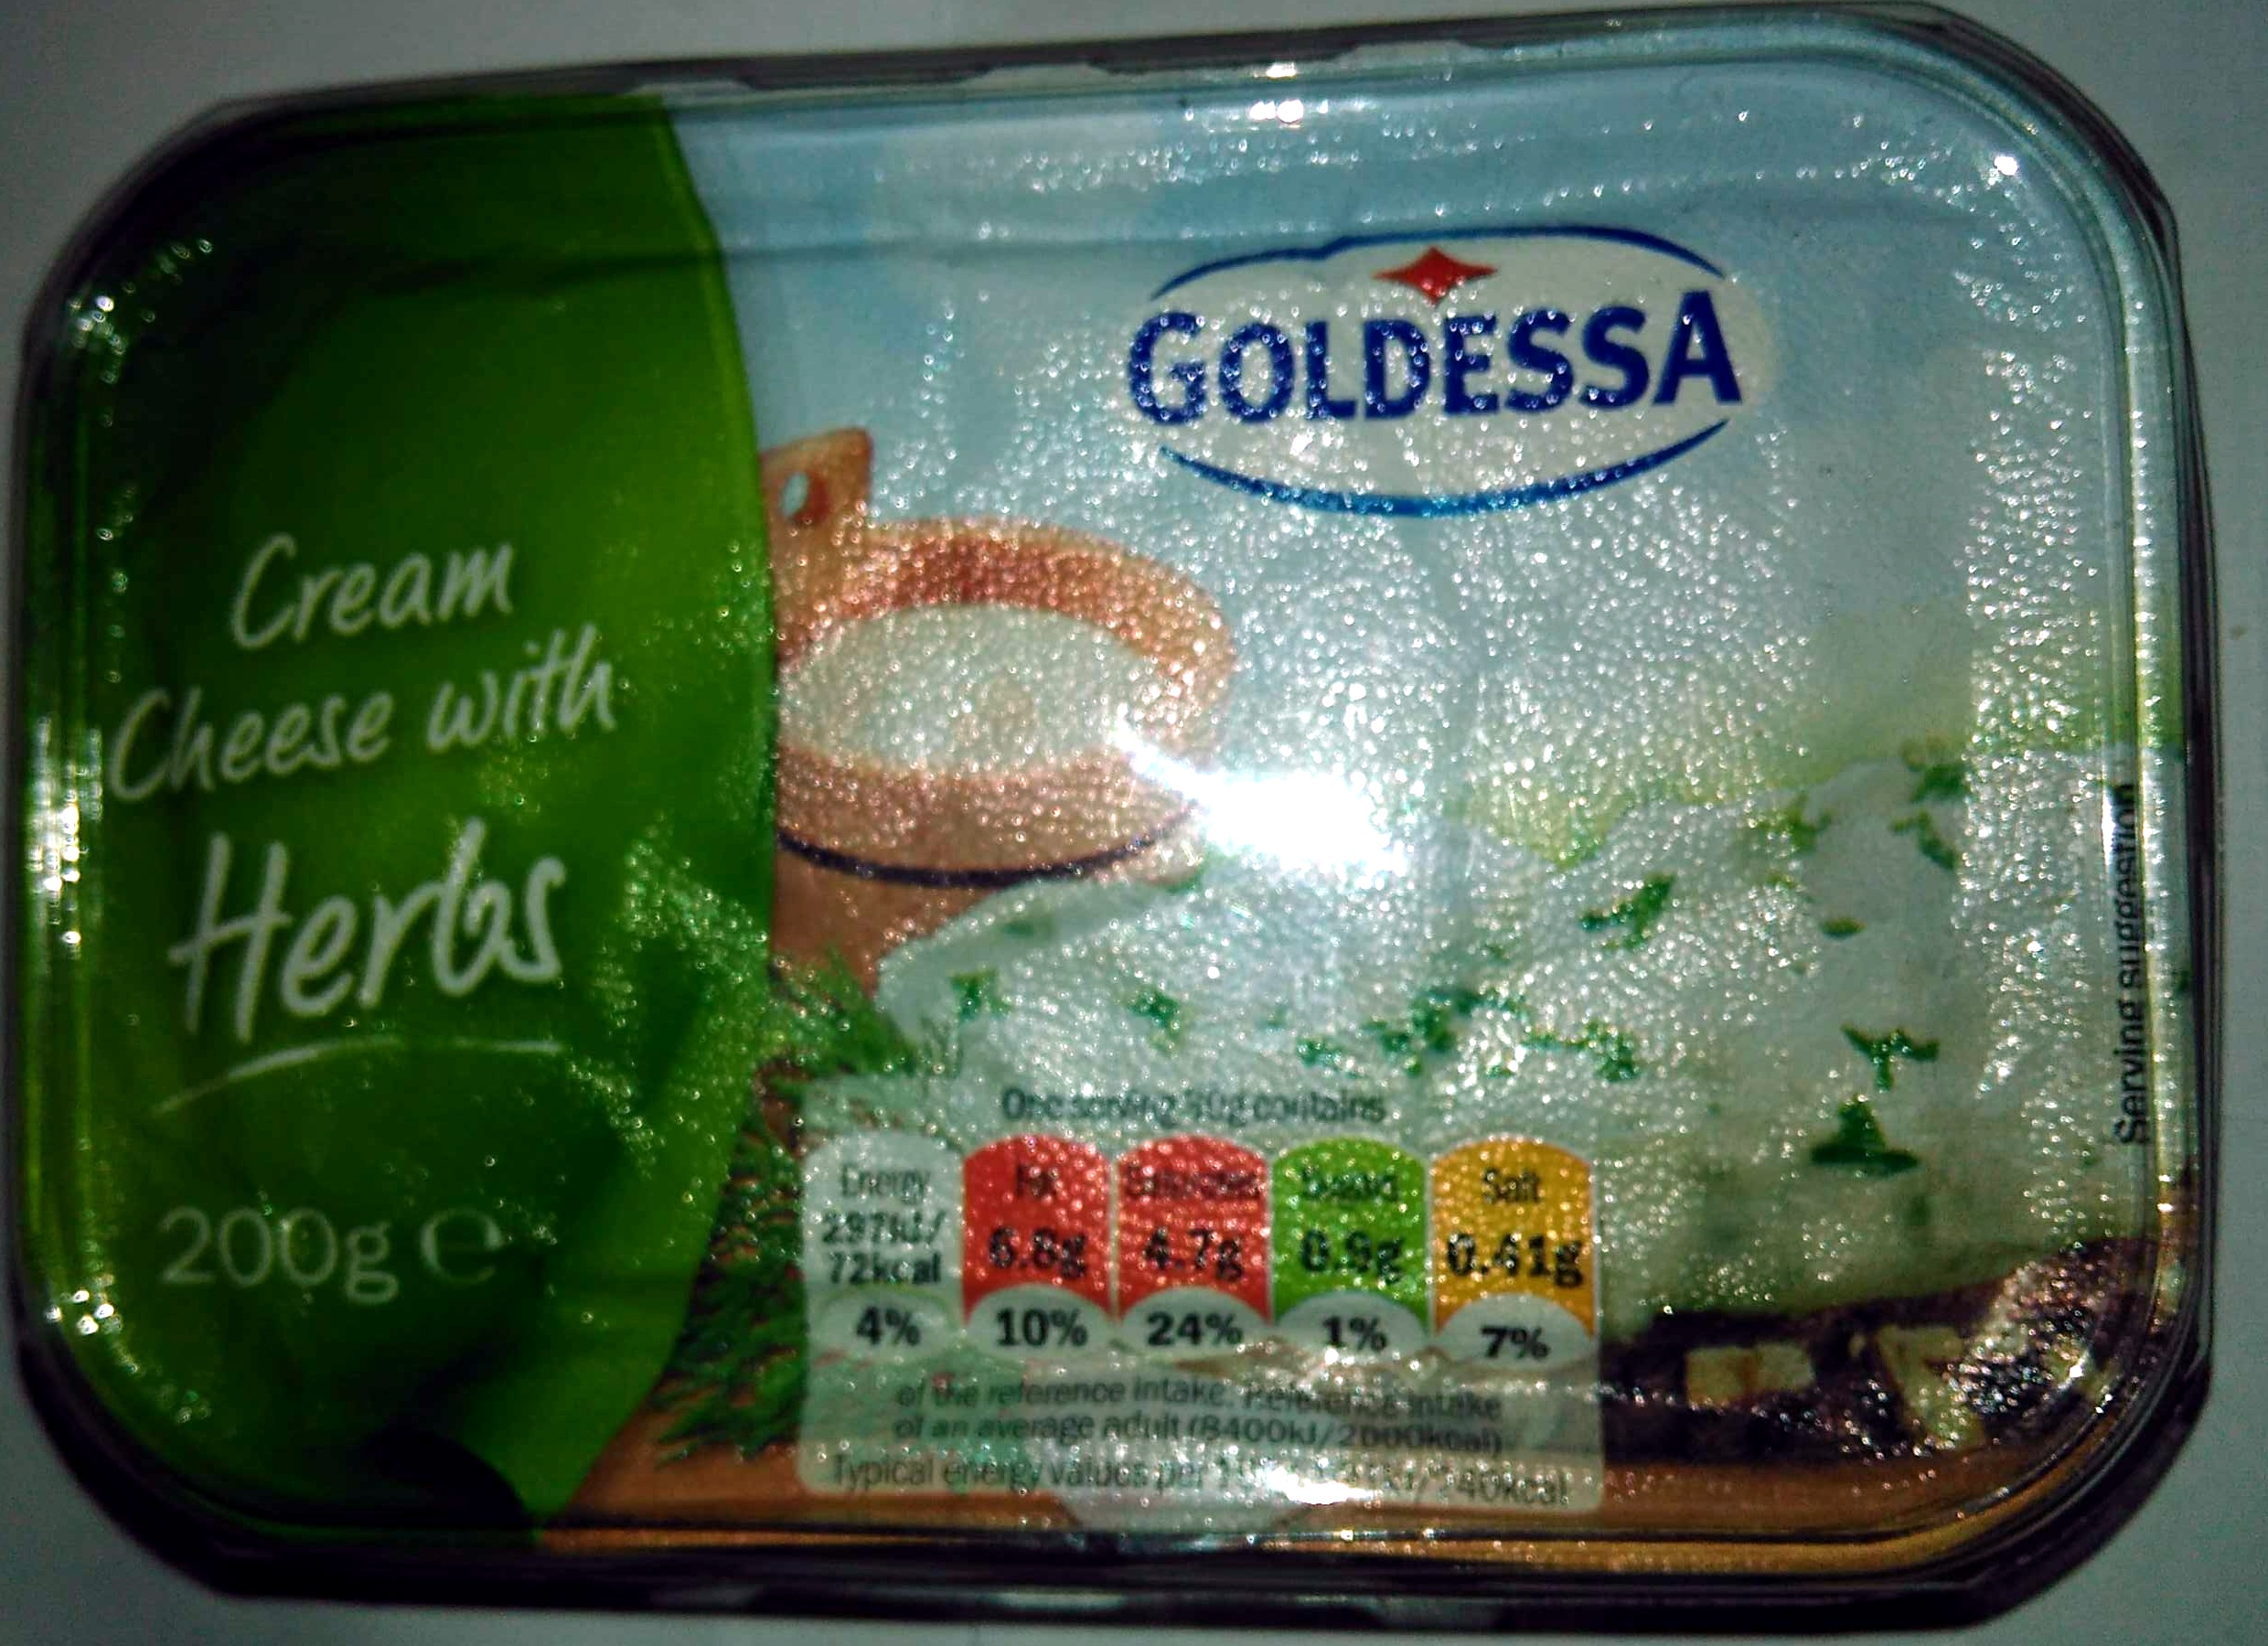 Cream cheese with herbs - Product